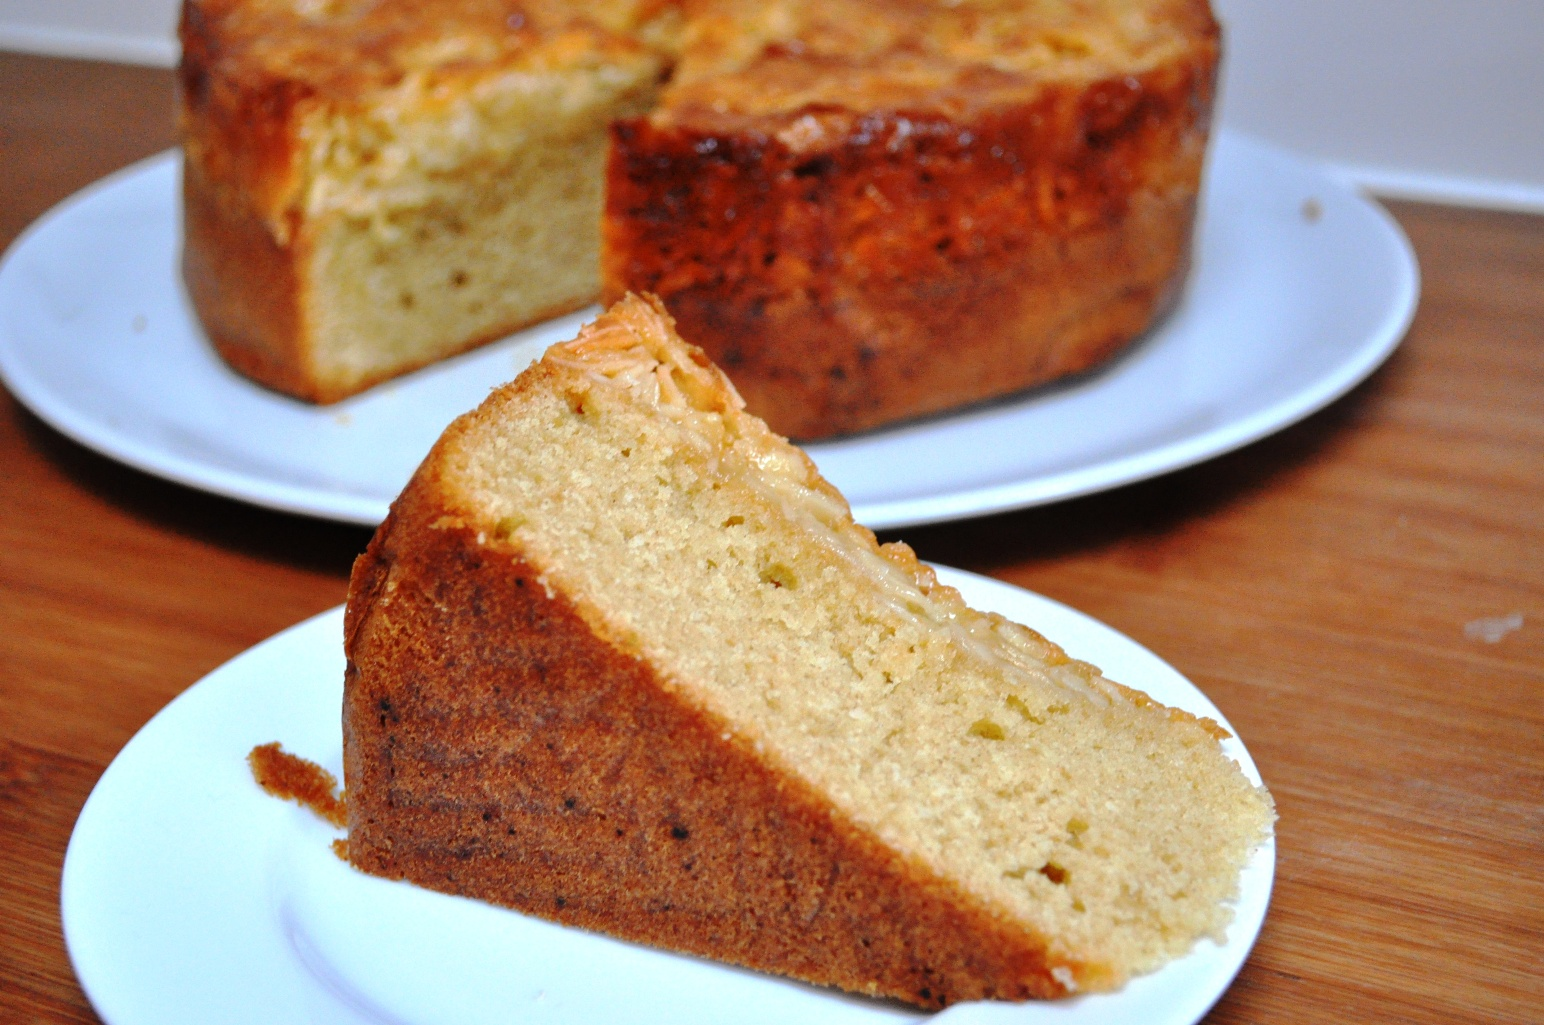 Can You Use Almond Milk For Baking A Cake